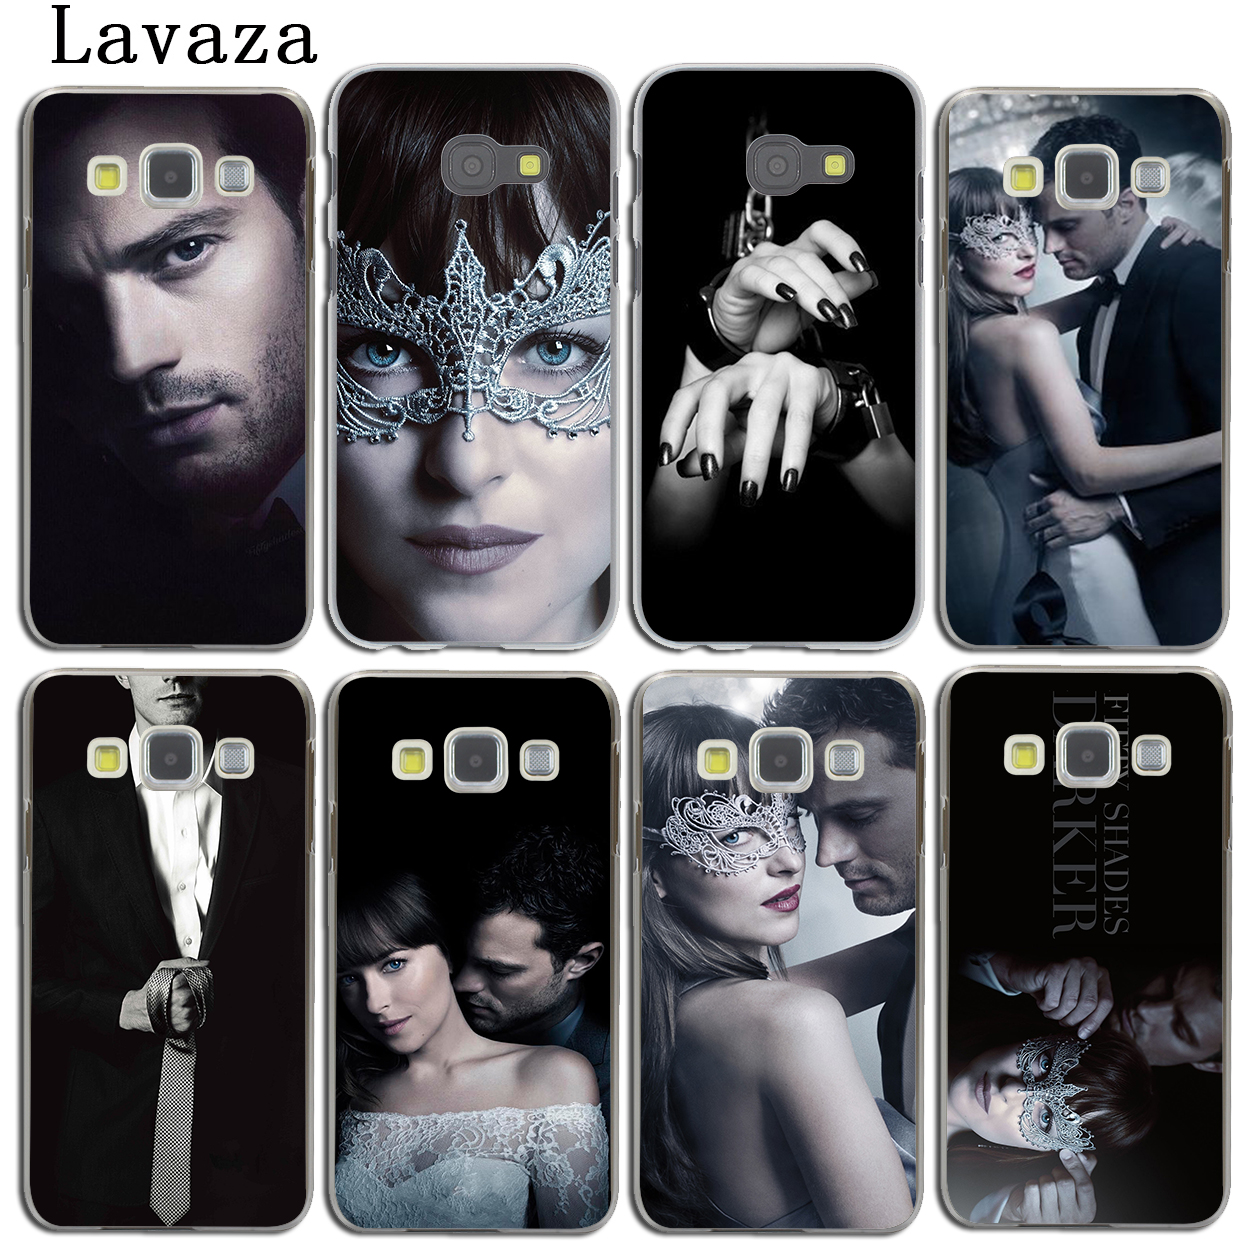 Lavaza Fifty Shades Darker of grey freed Case for Samsung Galaxy A3 A7 A8 A5 2018 2017 2016 2015 Note 8 5 4 3 Grand Prime 2